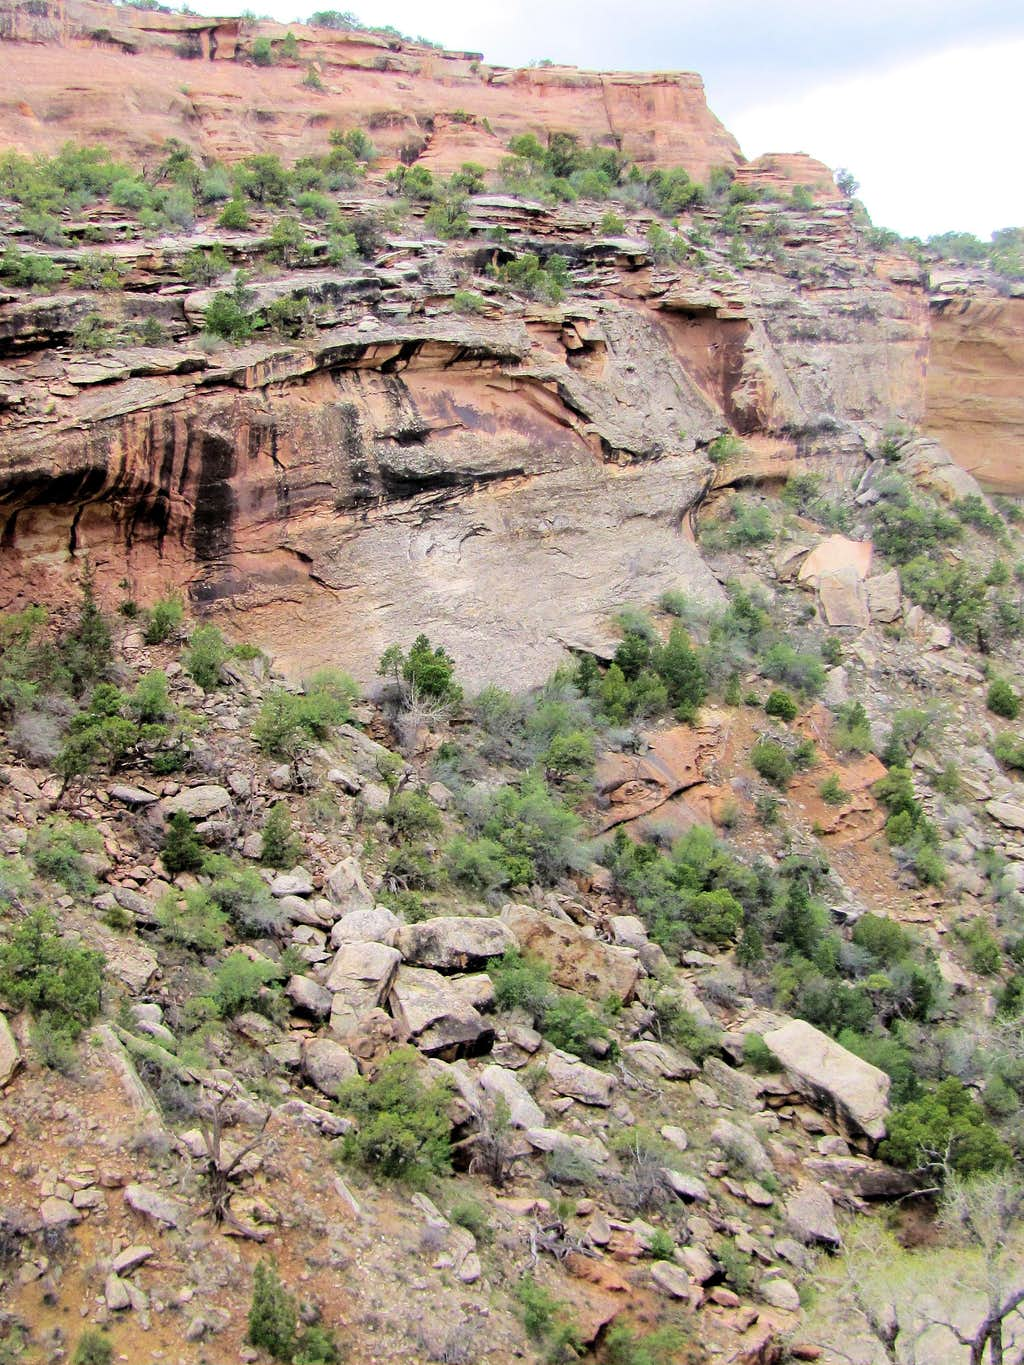 Top of dry waterfall